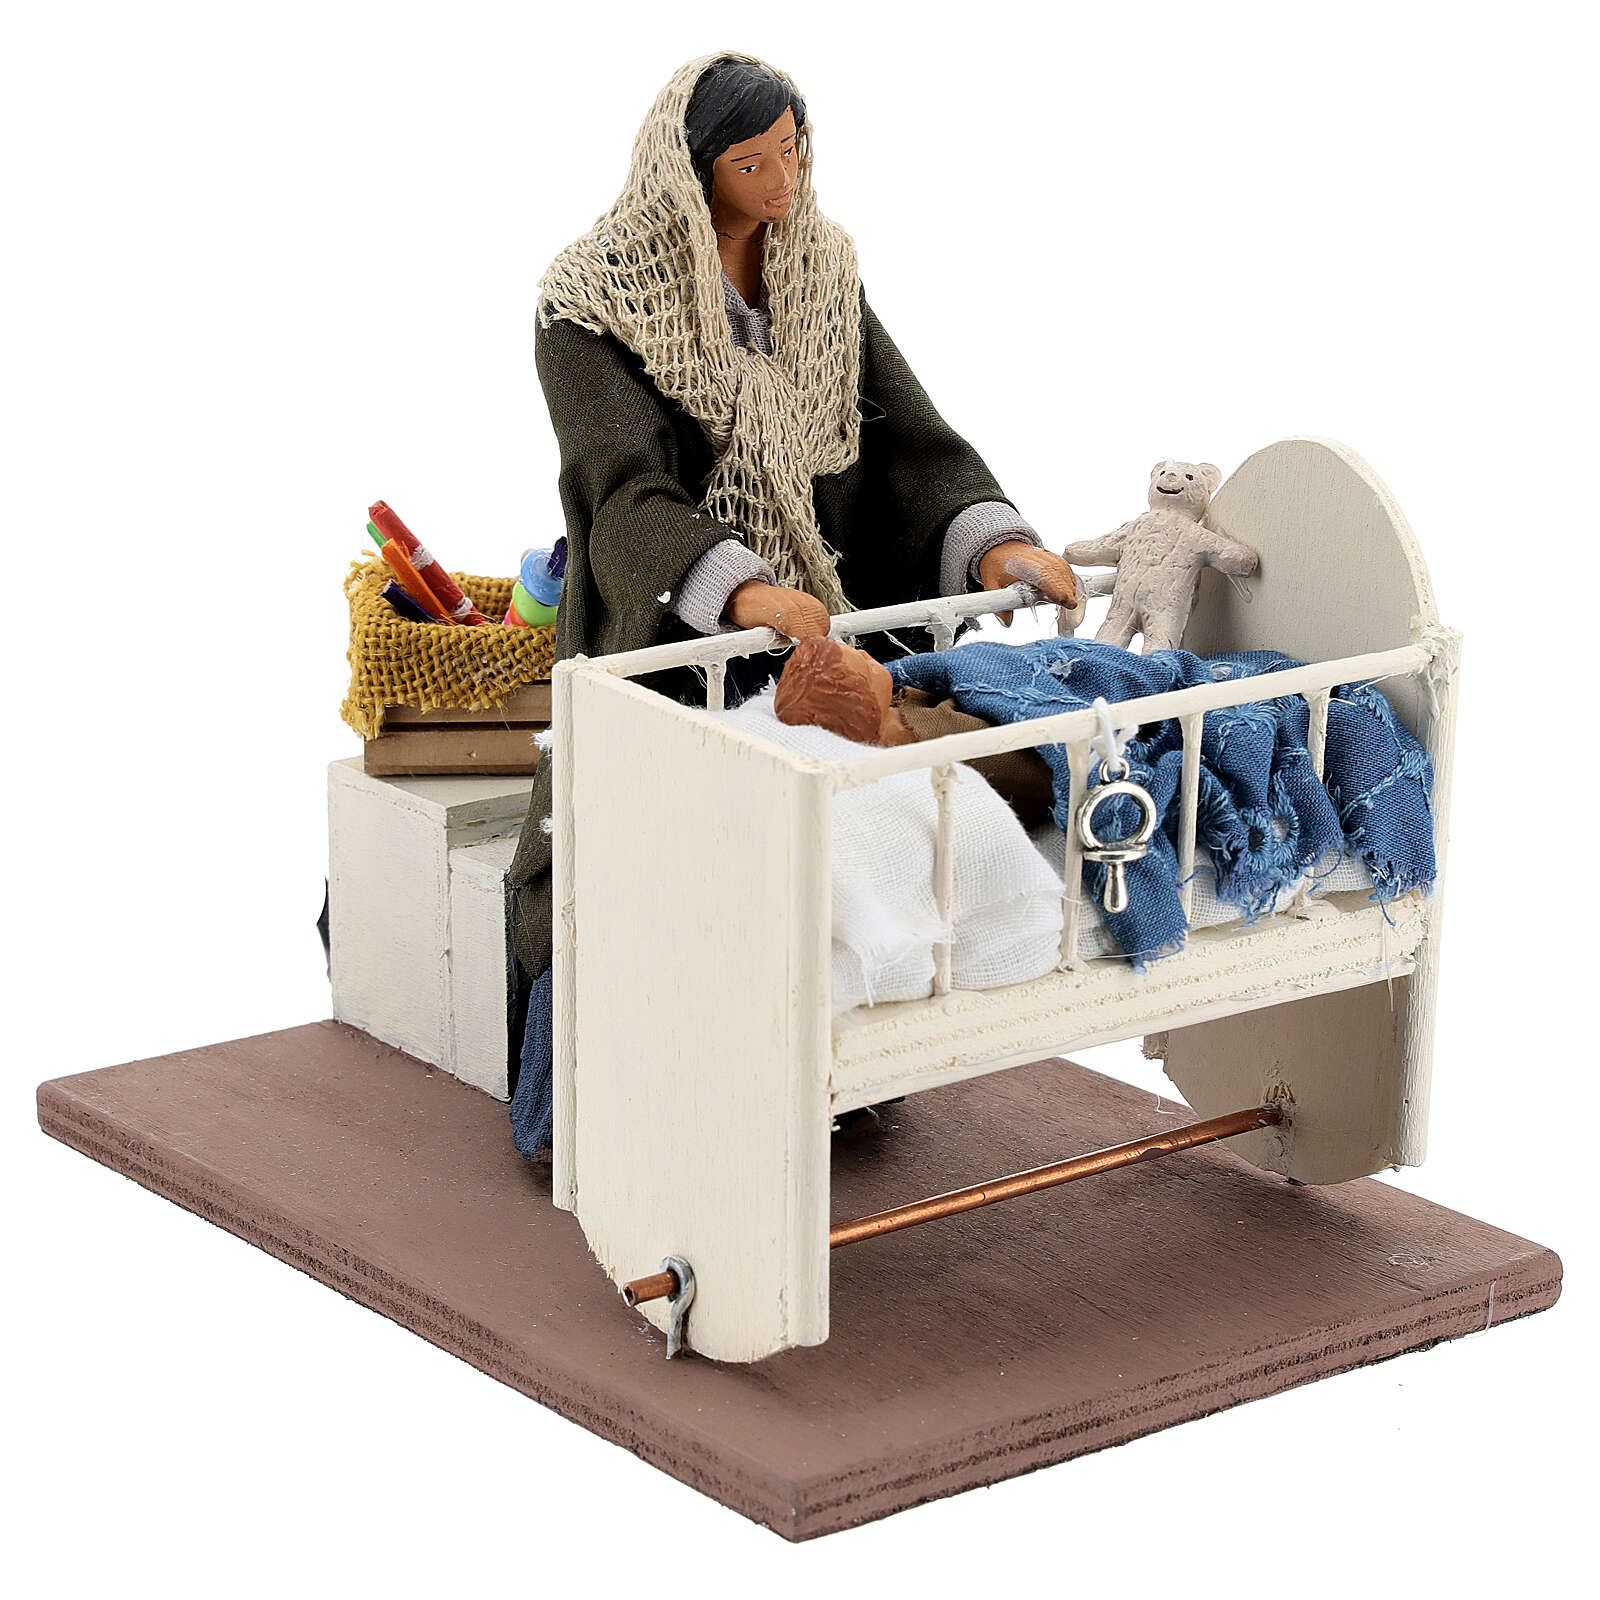 Moving woman baby cradle 14 cm 4